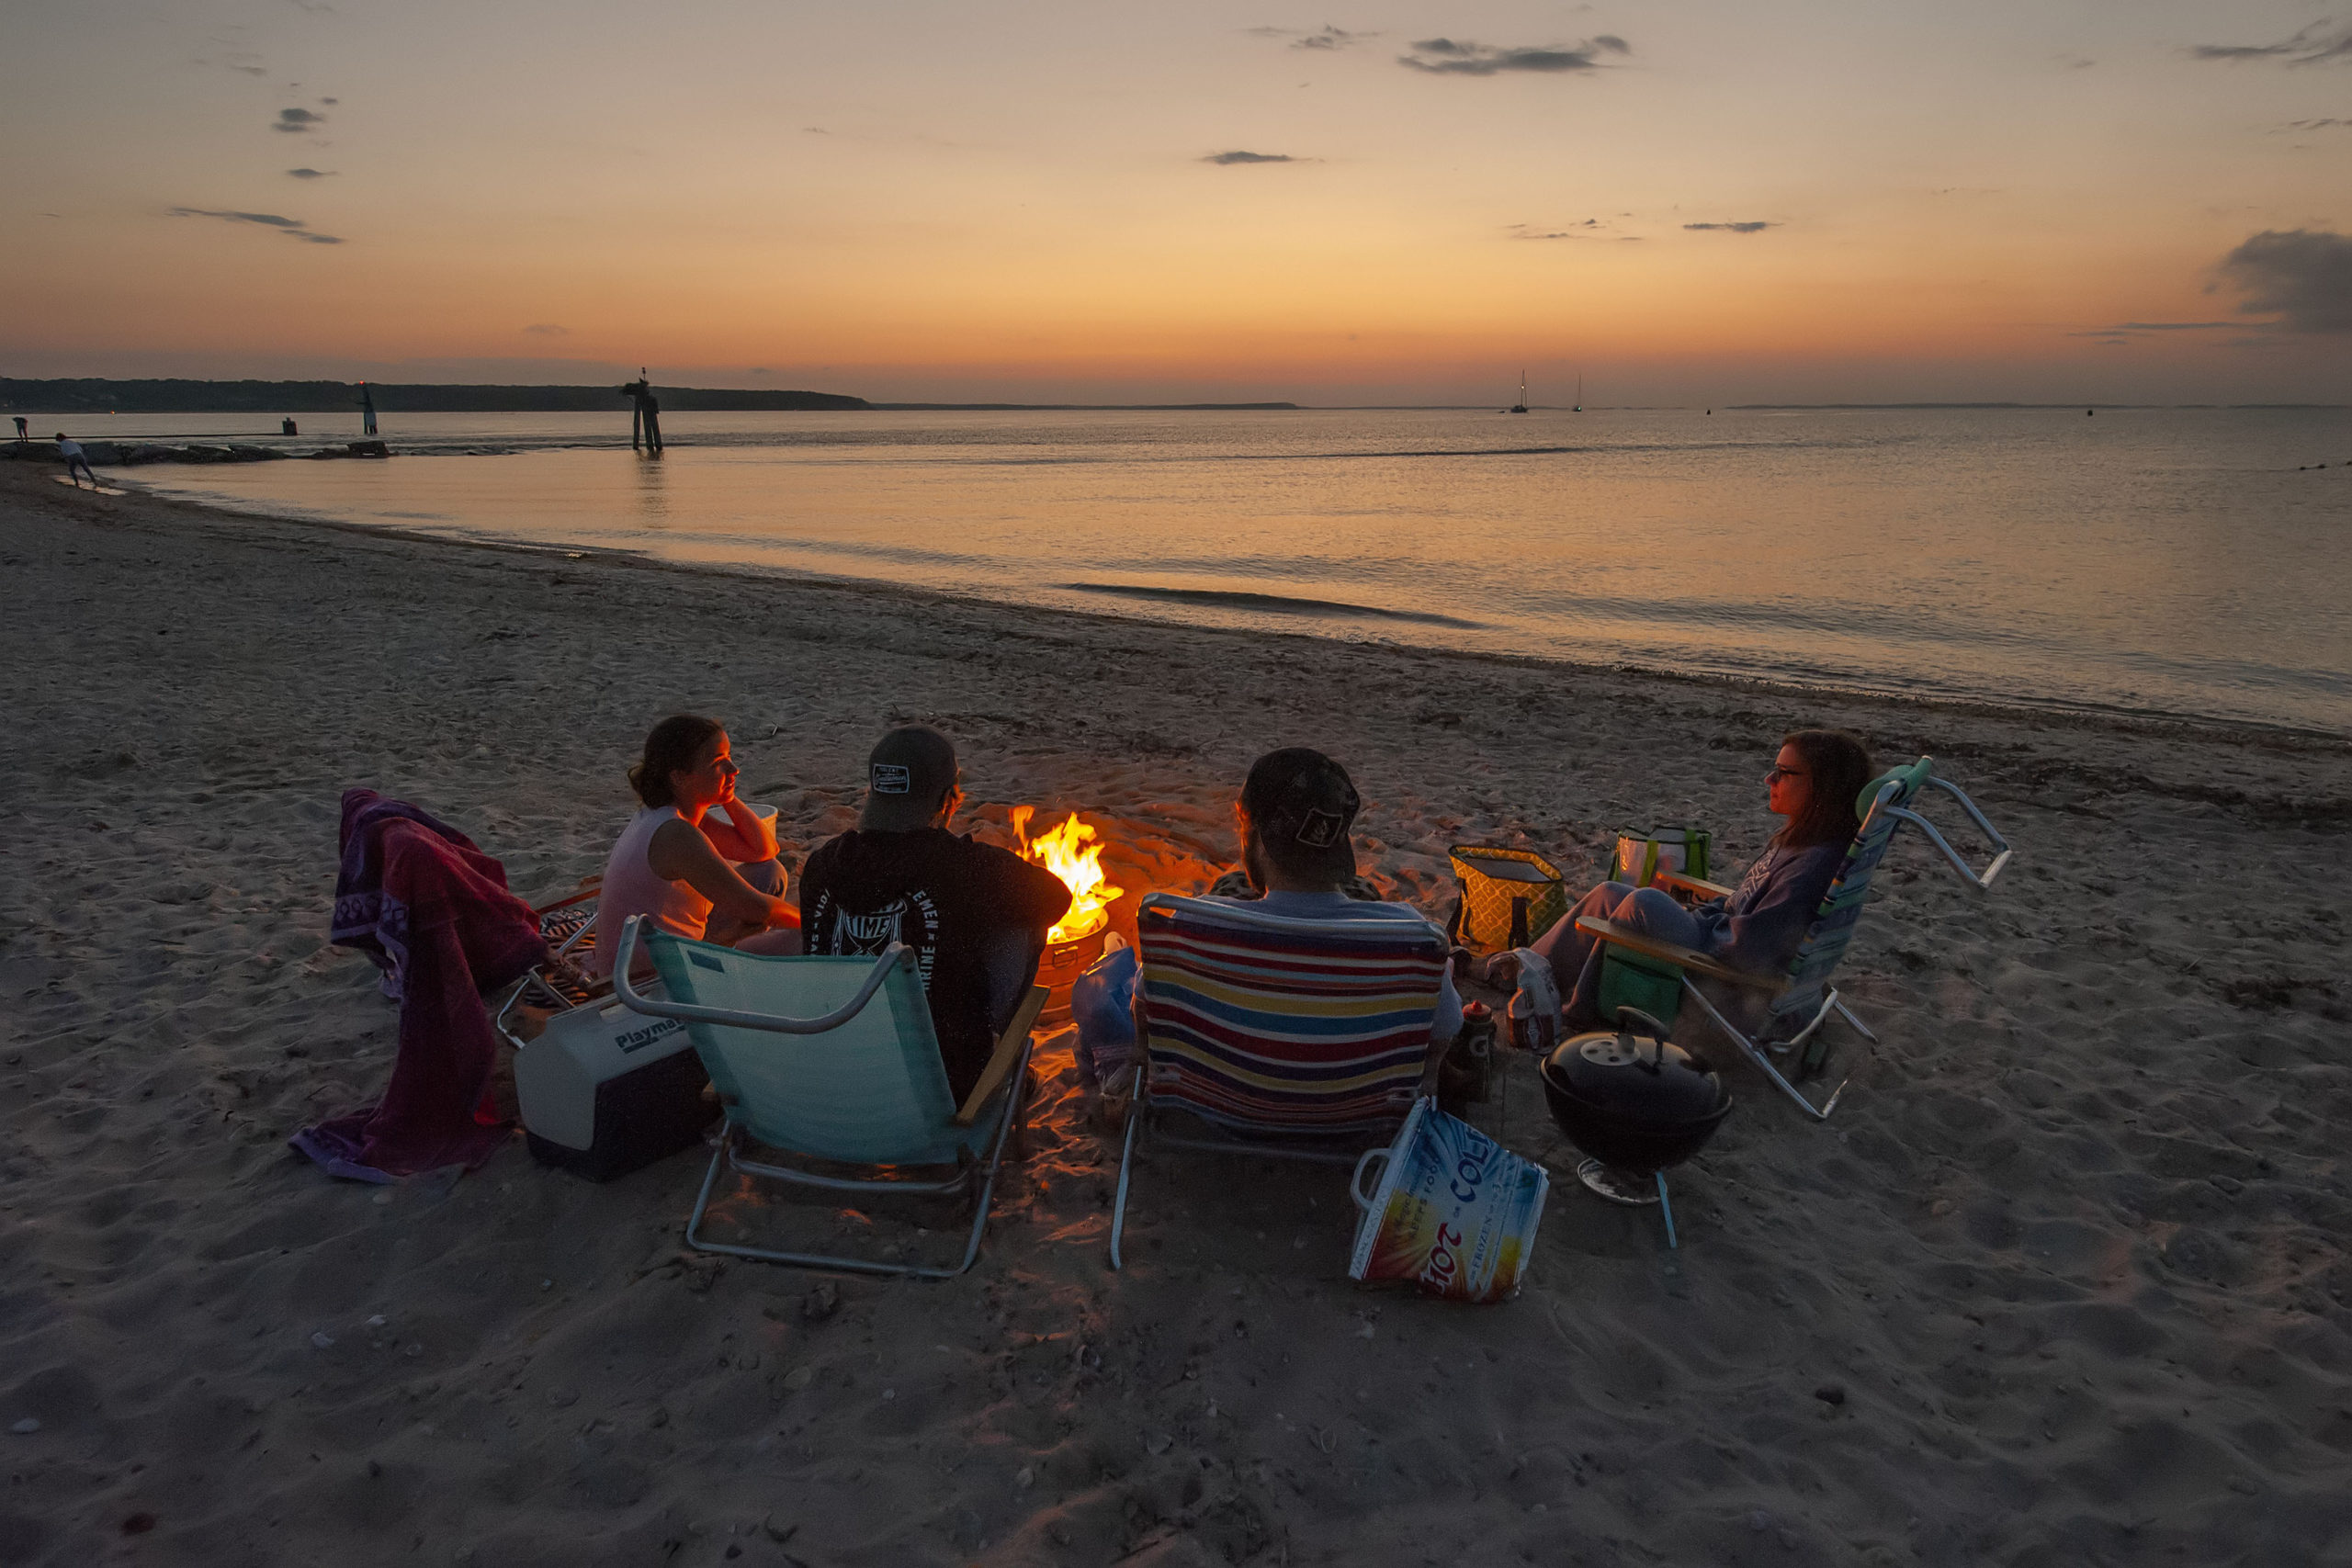 Randall Rush, Leanna DeMai, Lindsay DePointe and Tyler Jarvis enjoy a campfire as part of a July 4th celebration as the sun goes down at Maidstone Park Beach on Saturday evening.   MICHAEL HELLER